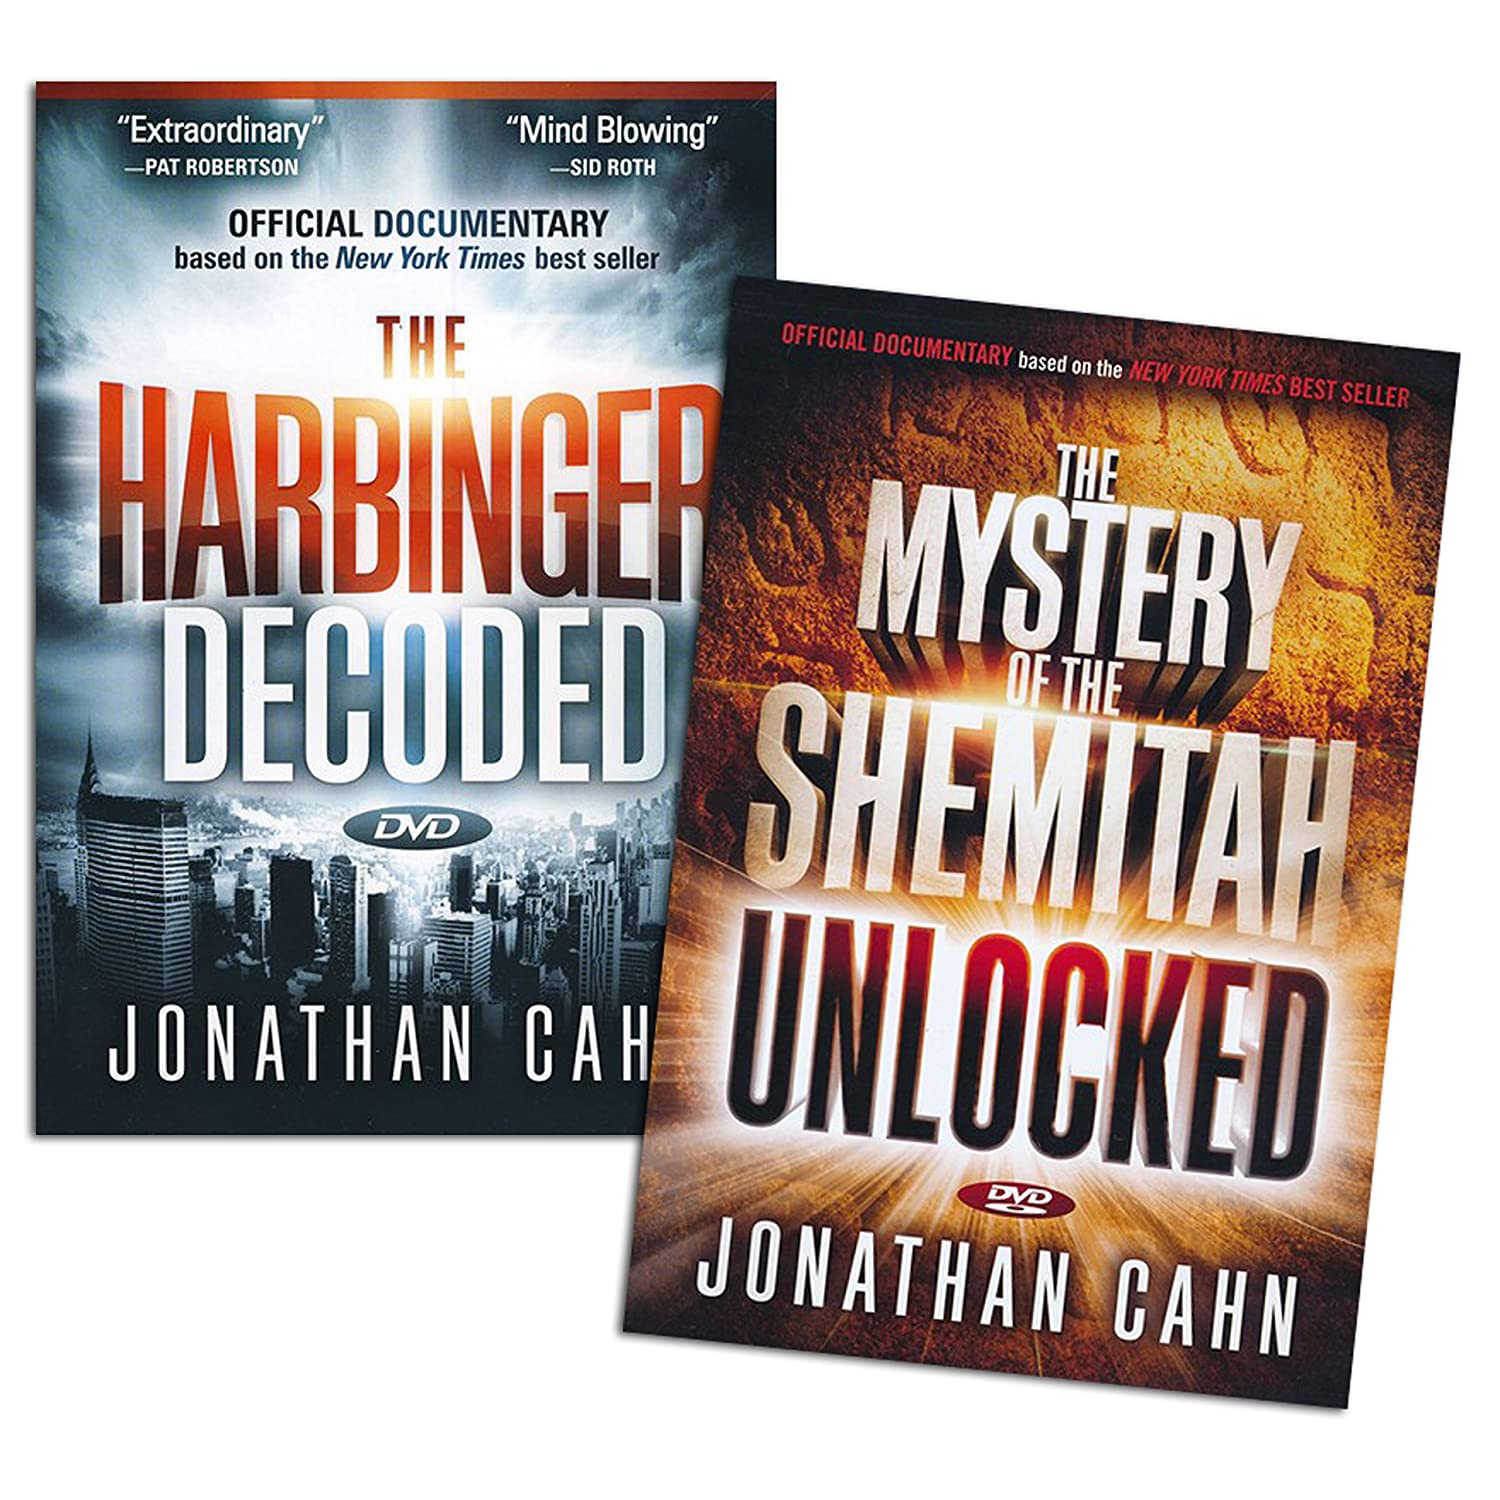 Amazon jonathan cahn dvd set the harbinger decoded the amazon jonathan cahn dvd set the harbinger decoded the mystery of the shemitah unlocked movies tv malvernweather Gallery